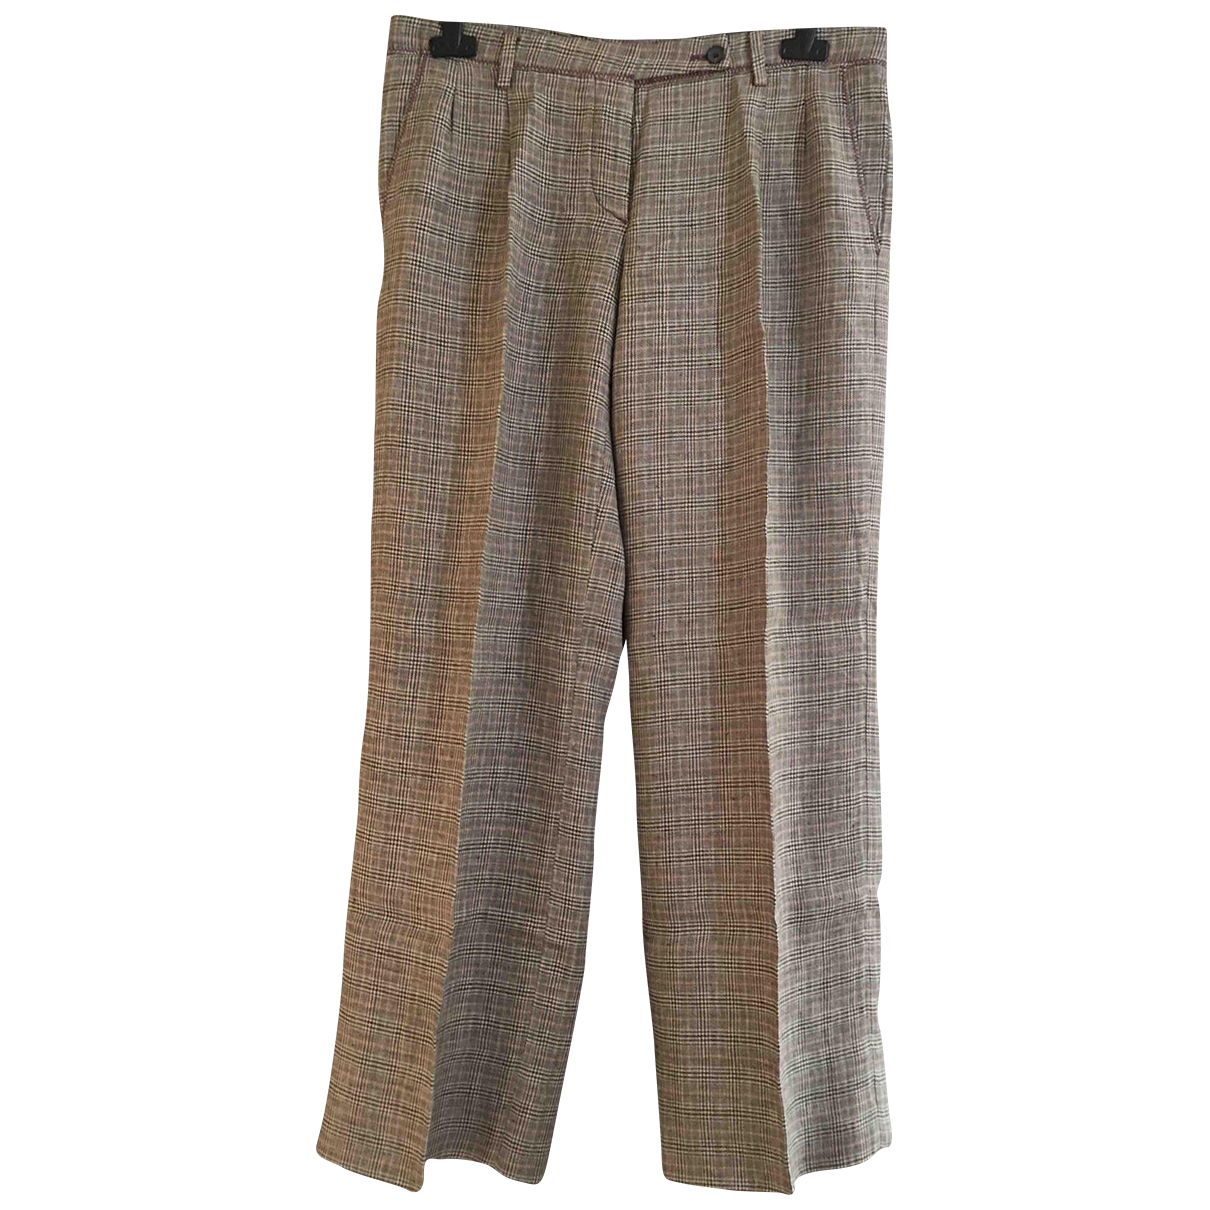 Mauro Grifoni \N Brown Linen Trousers for Women 44 IT